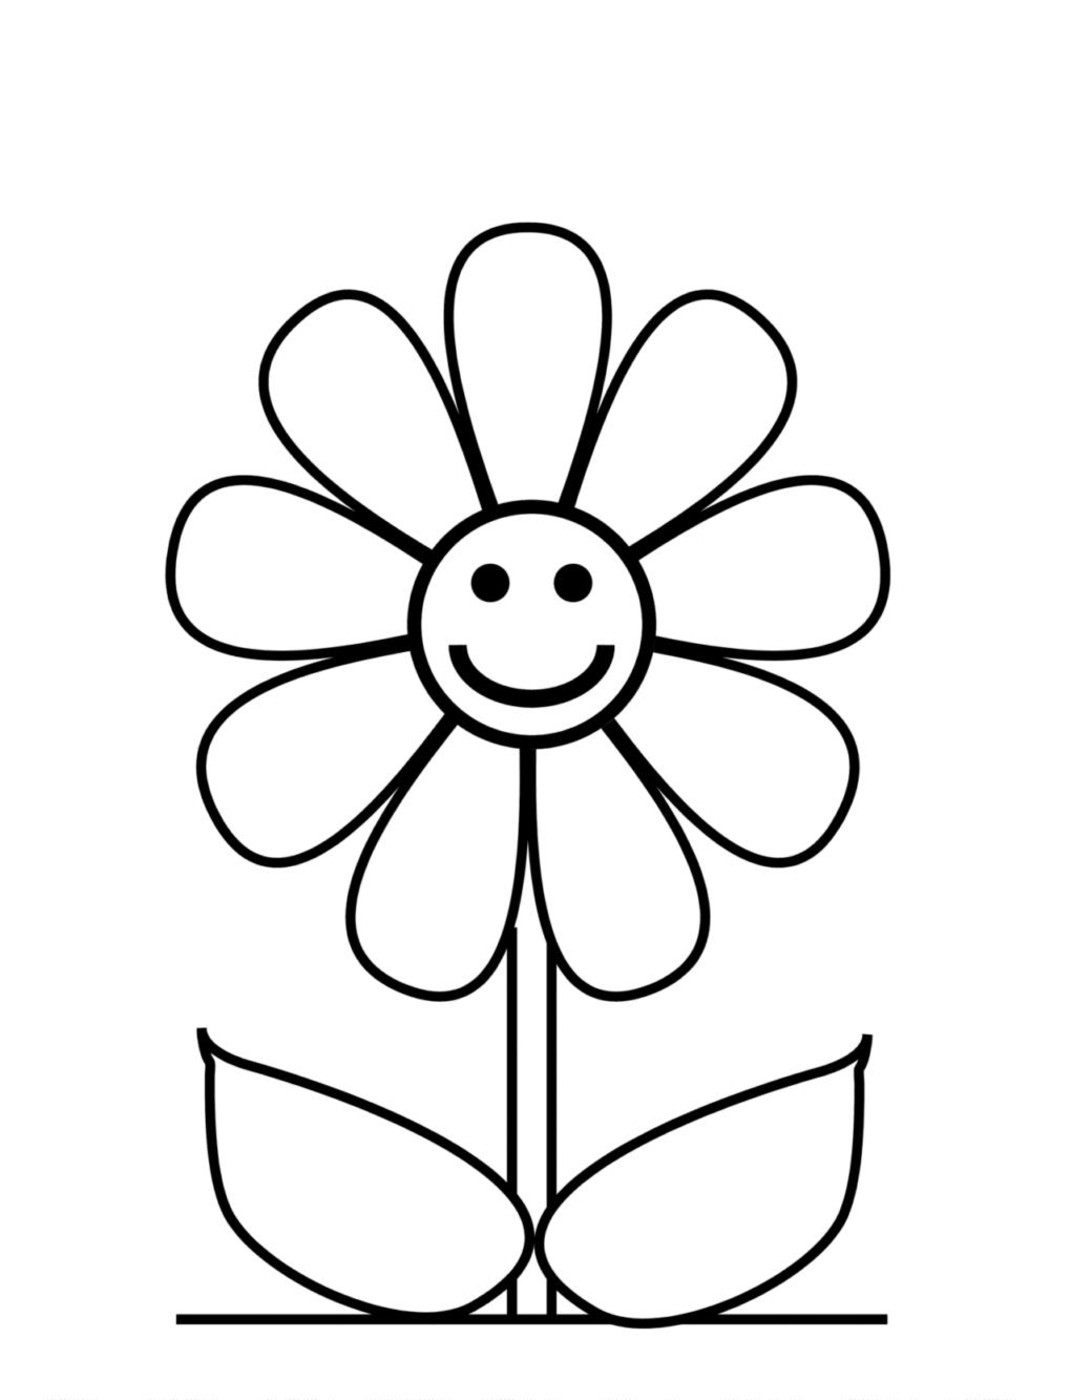 flower coloring sheet free easy to print flower coloring pages tulamama flower sheet coloring